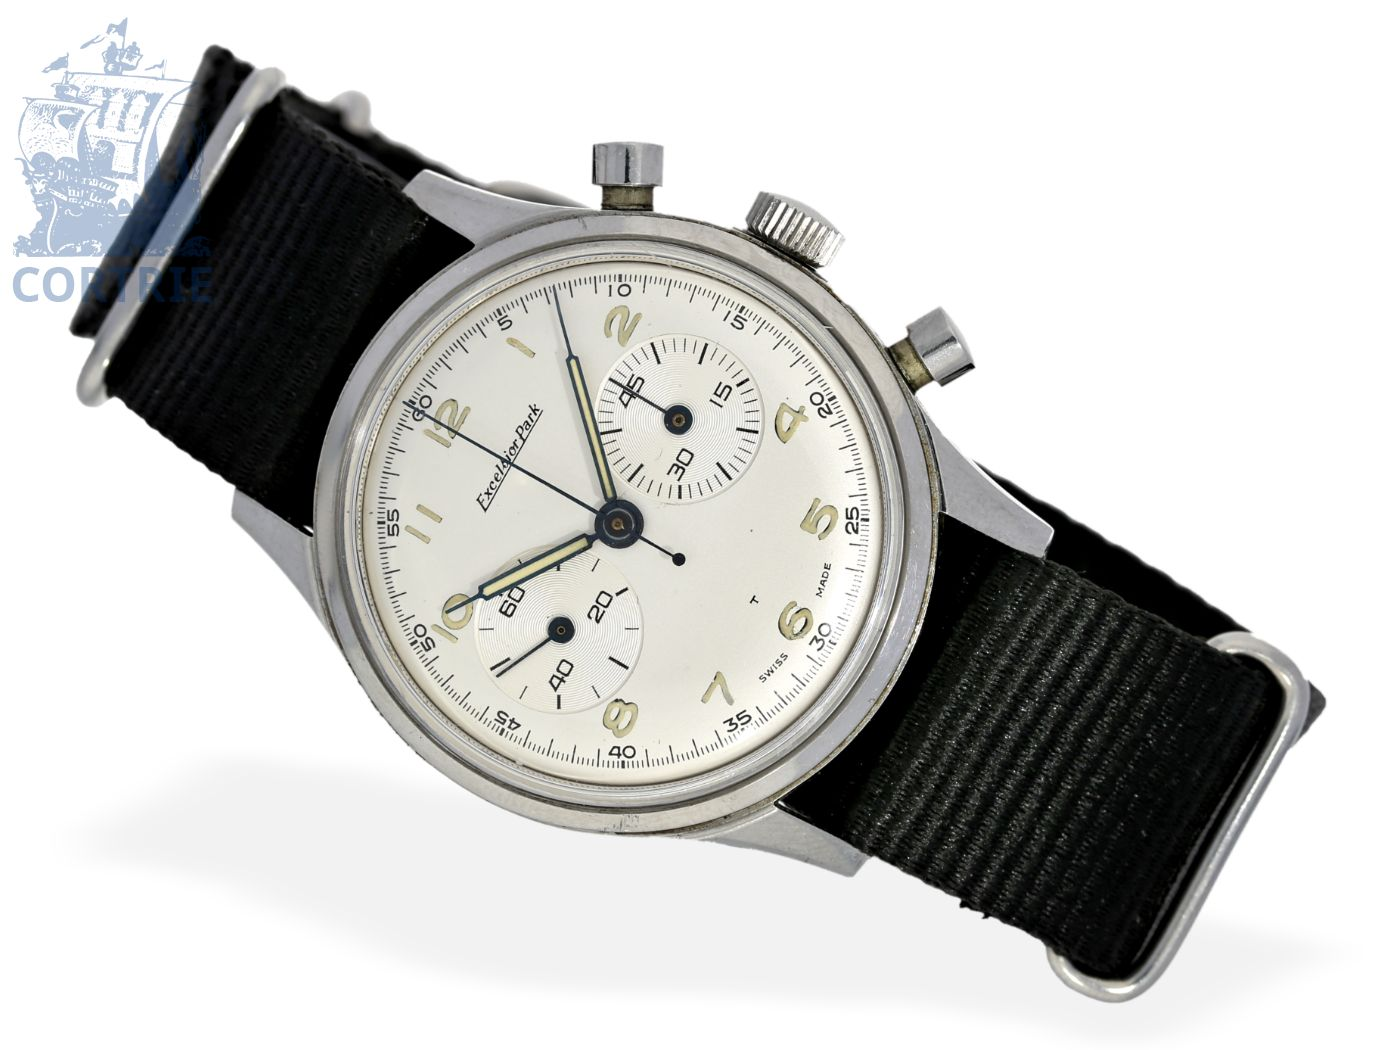 Wristwatch: big stainless steel chronograph Excelsior Park, excellent condition, ca. 1950-